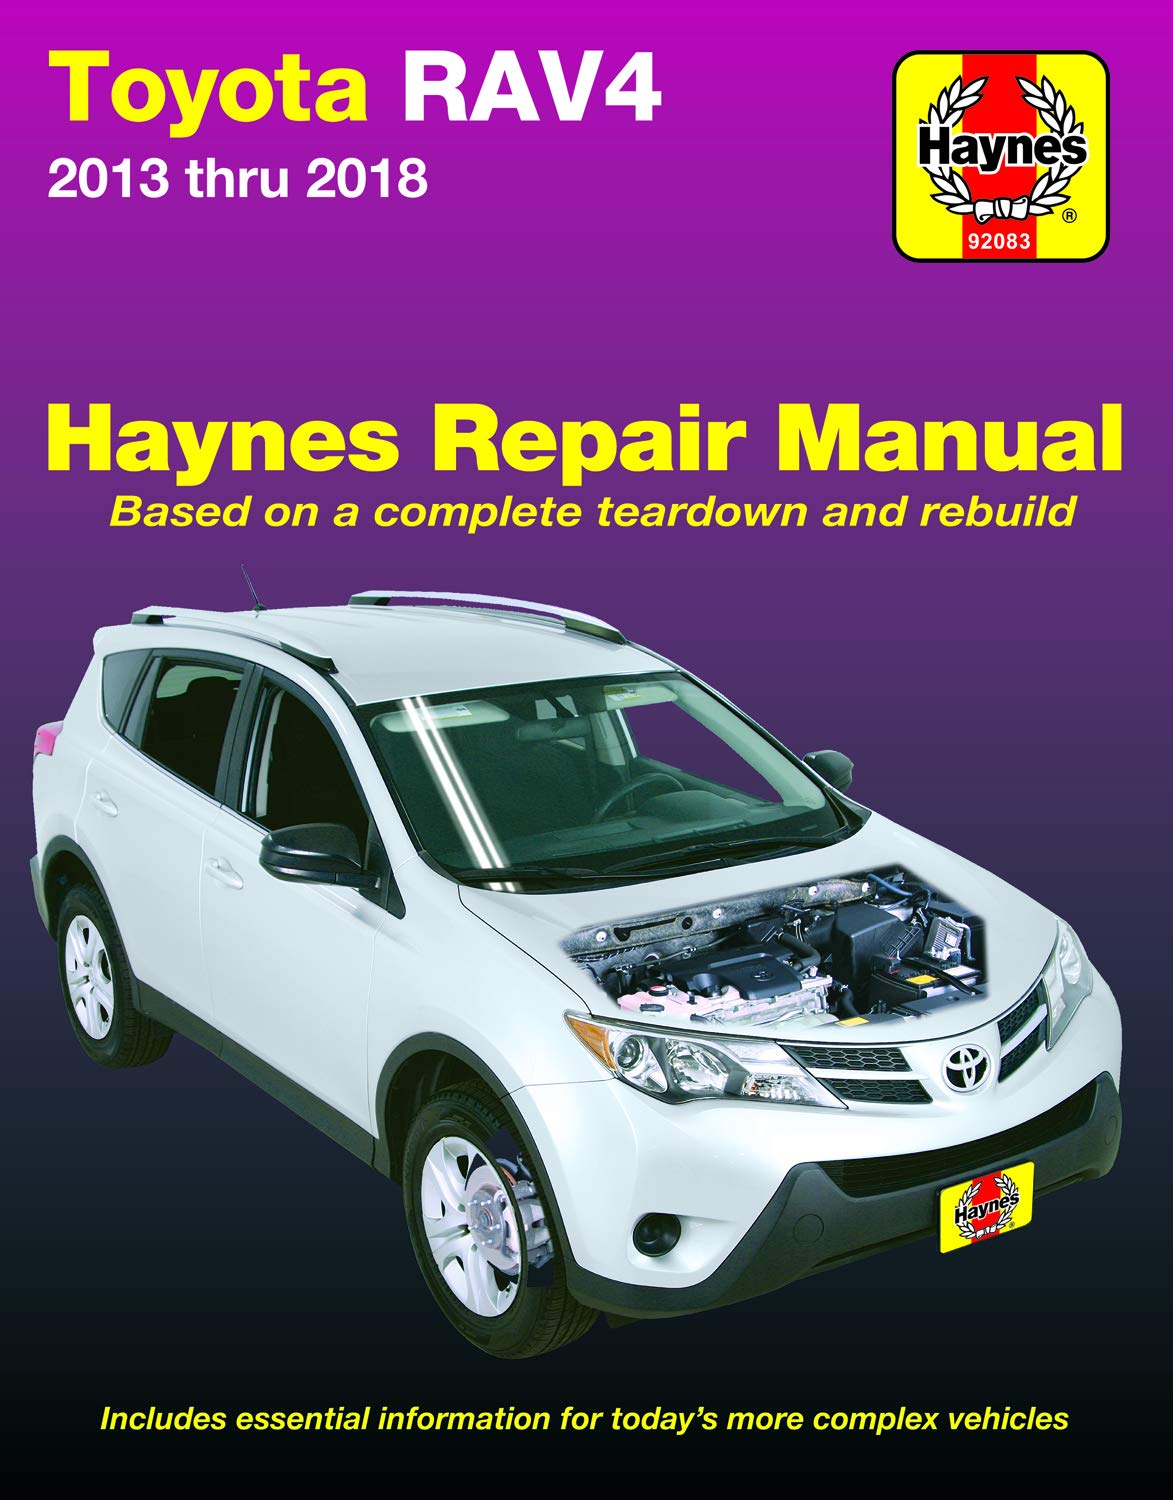 [DIAGRAM_1CA]  Toyota RAV4 (13-18) Haynes Repair Manual (Does not cover information  specific to RAV4 EV (Electric Vehicle) models. Includes thorough vehicle  coverage ... exclusion noted.) (Haynes Automotive): Haynes Manuals:  9781620923252: Amazon.com: Books | 2016 Toyota Rav4 Engine Diagram |  | Amazon.com